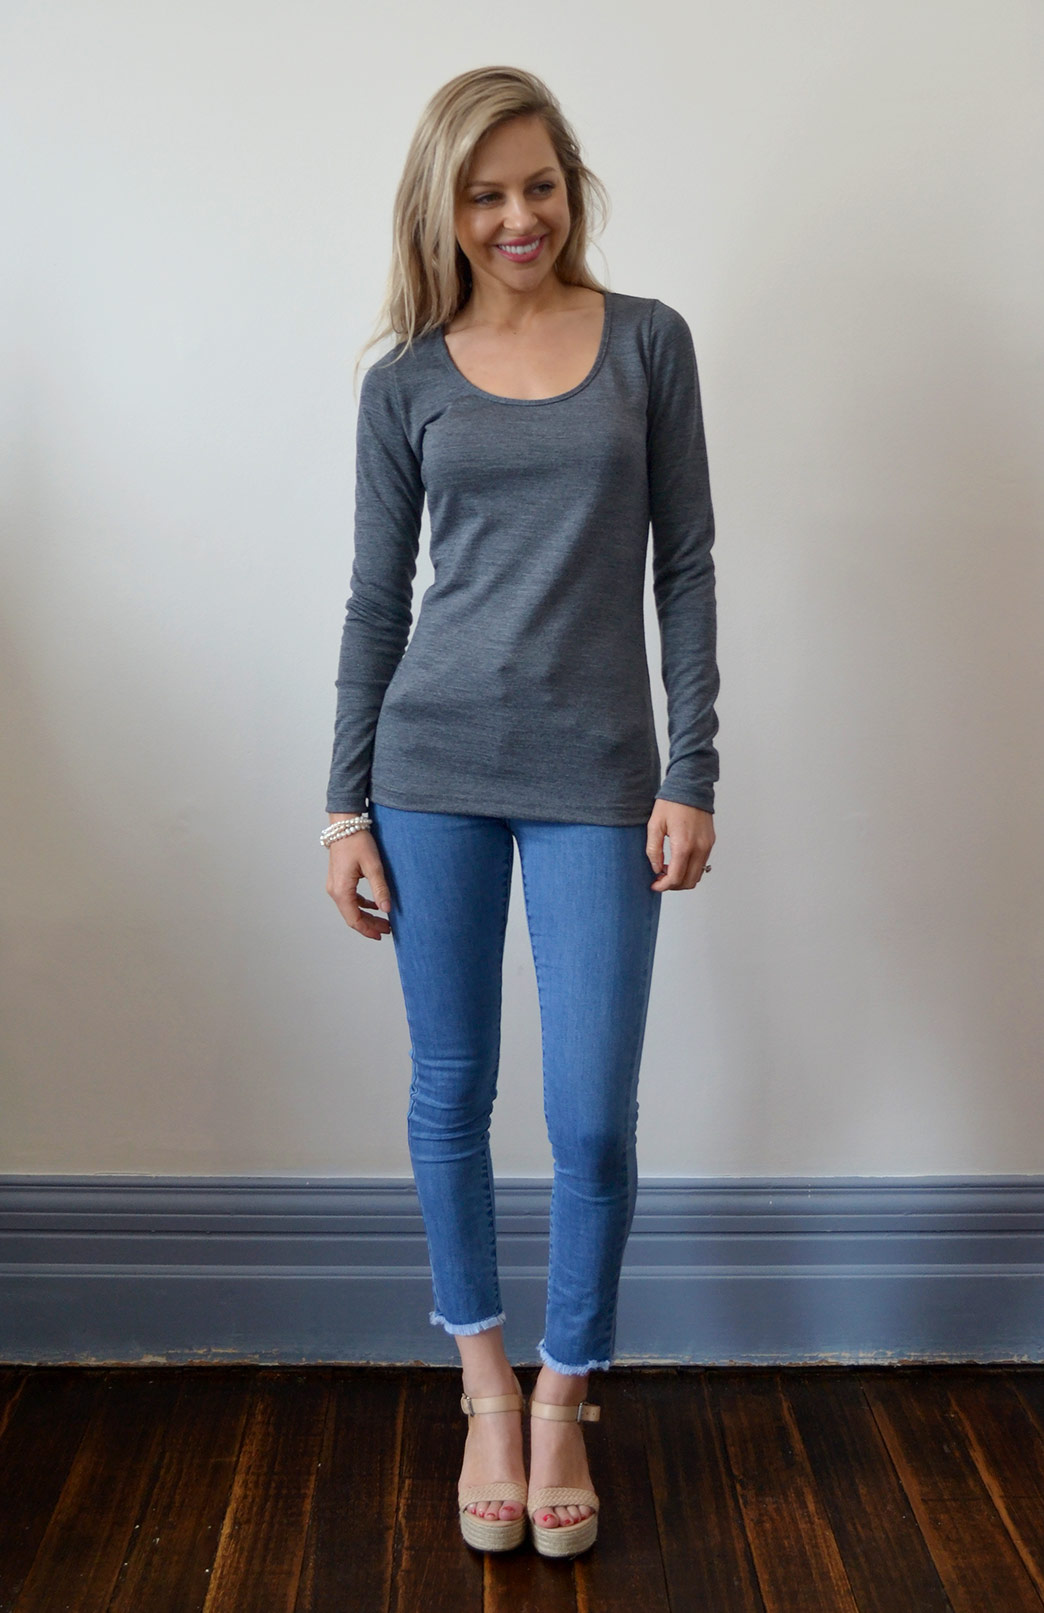 Scoop Neck Top - Plain - Women's Classic Black Long Sleeve Merino Modal Layering Fashion Top - Smitten Merino Tasmania Australia